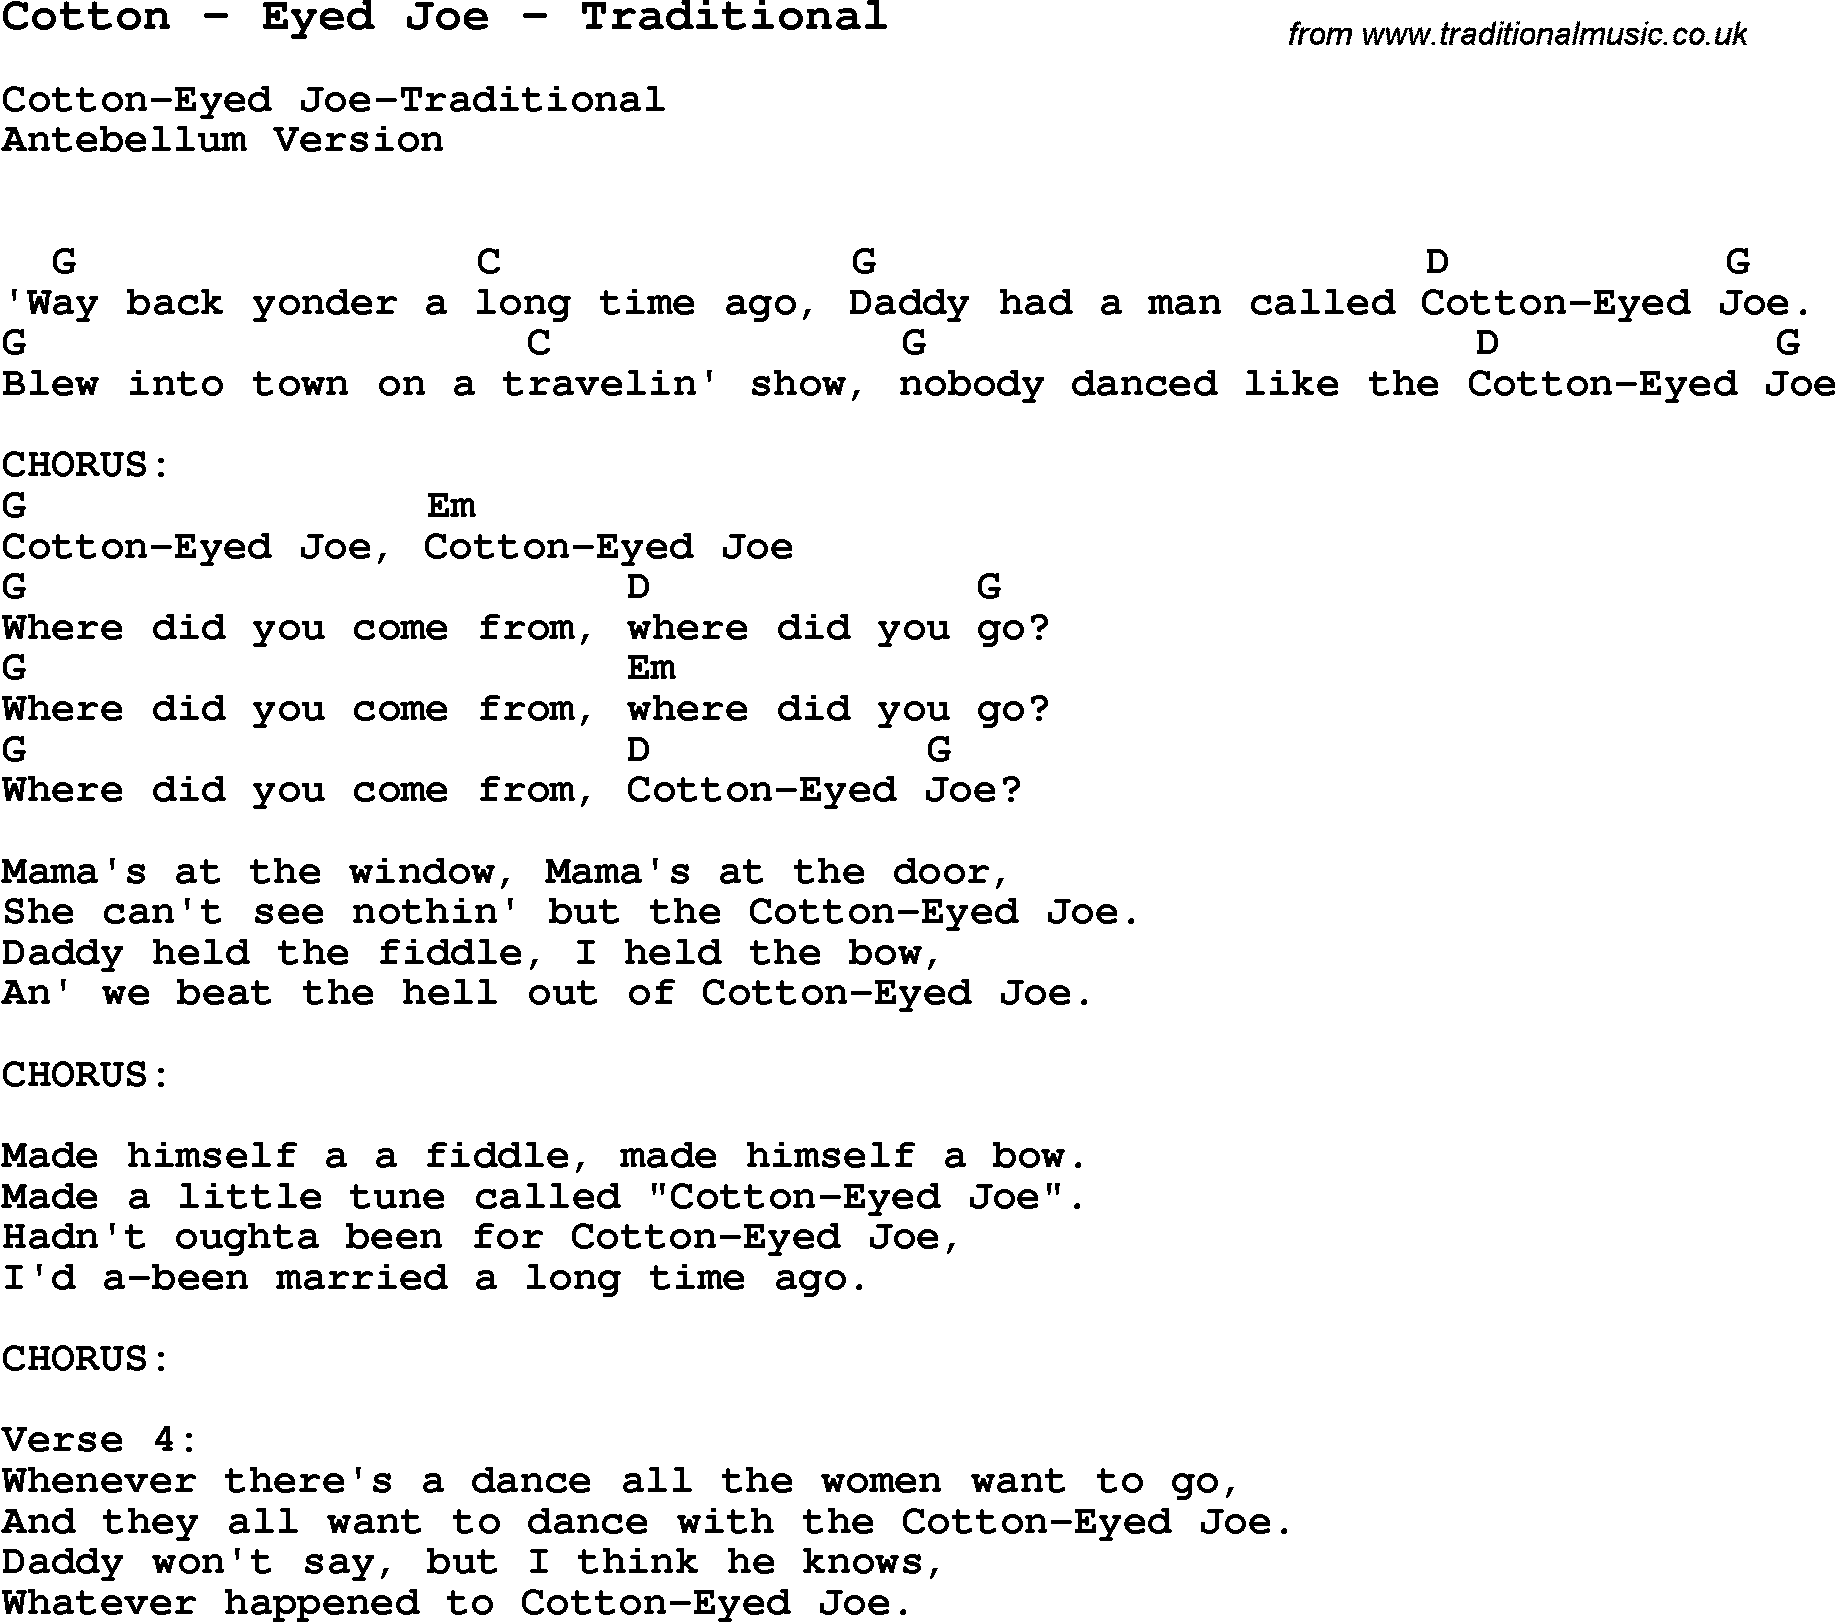 Song Cotton By Eyed Joe By Traditional With Lyrics For Vocal Performance And Accompaniment Chords For Guitar Chords For Songs Ukulele Songs Lyrics And Chords